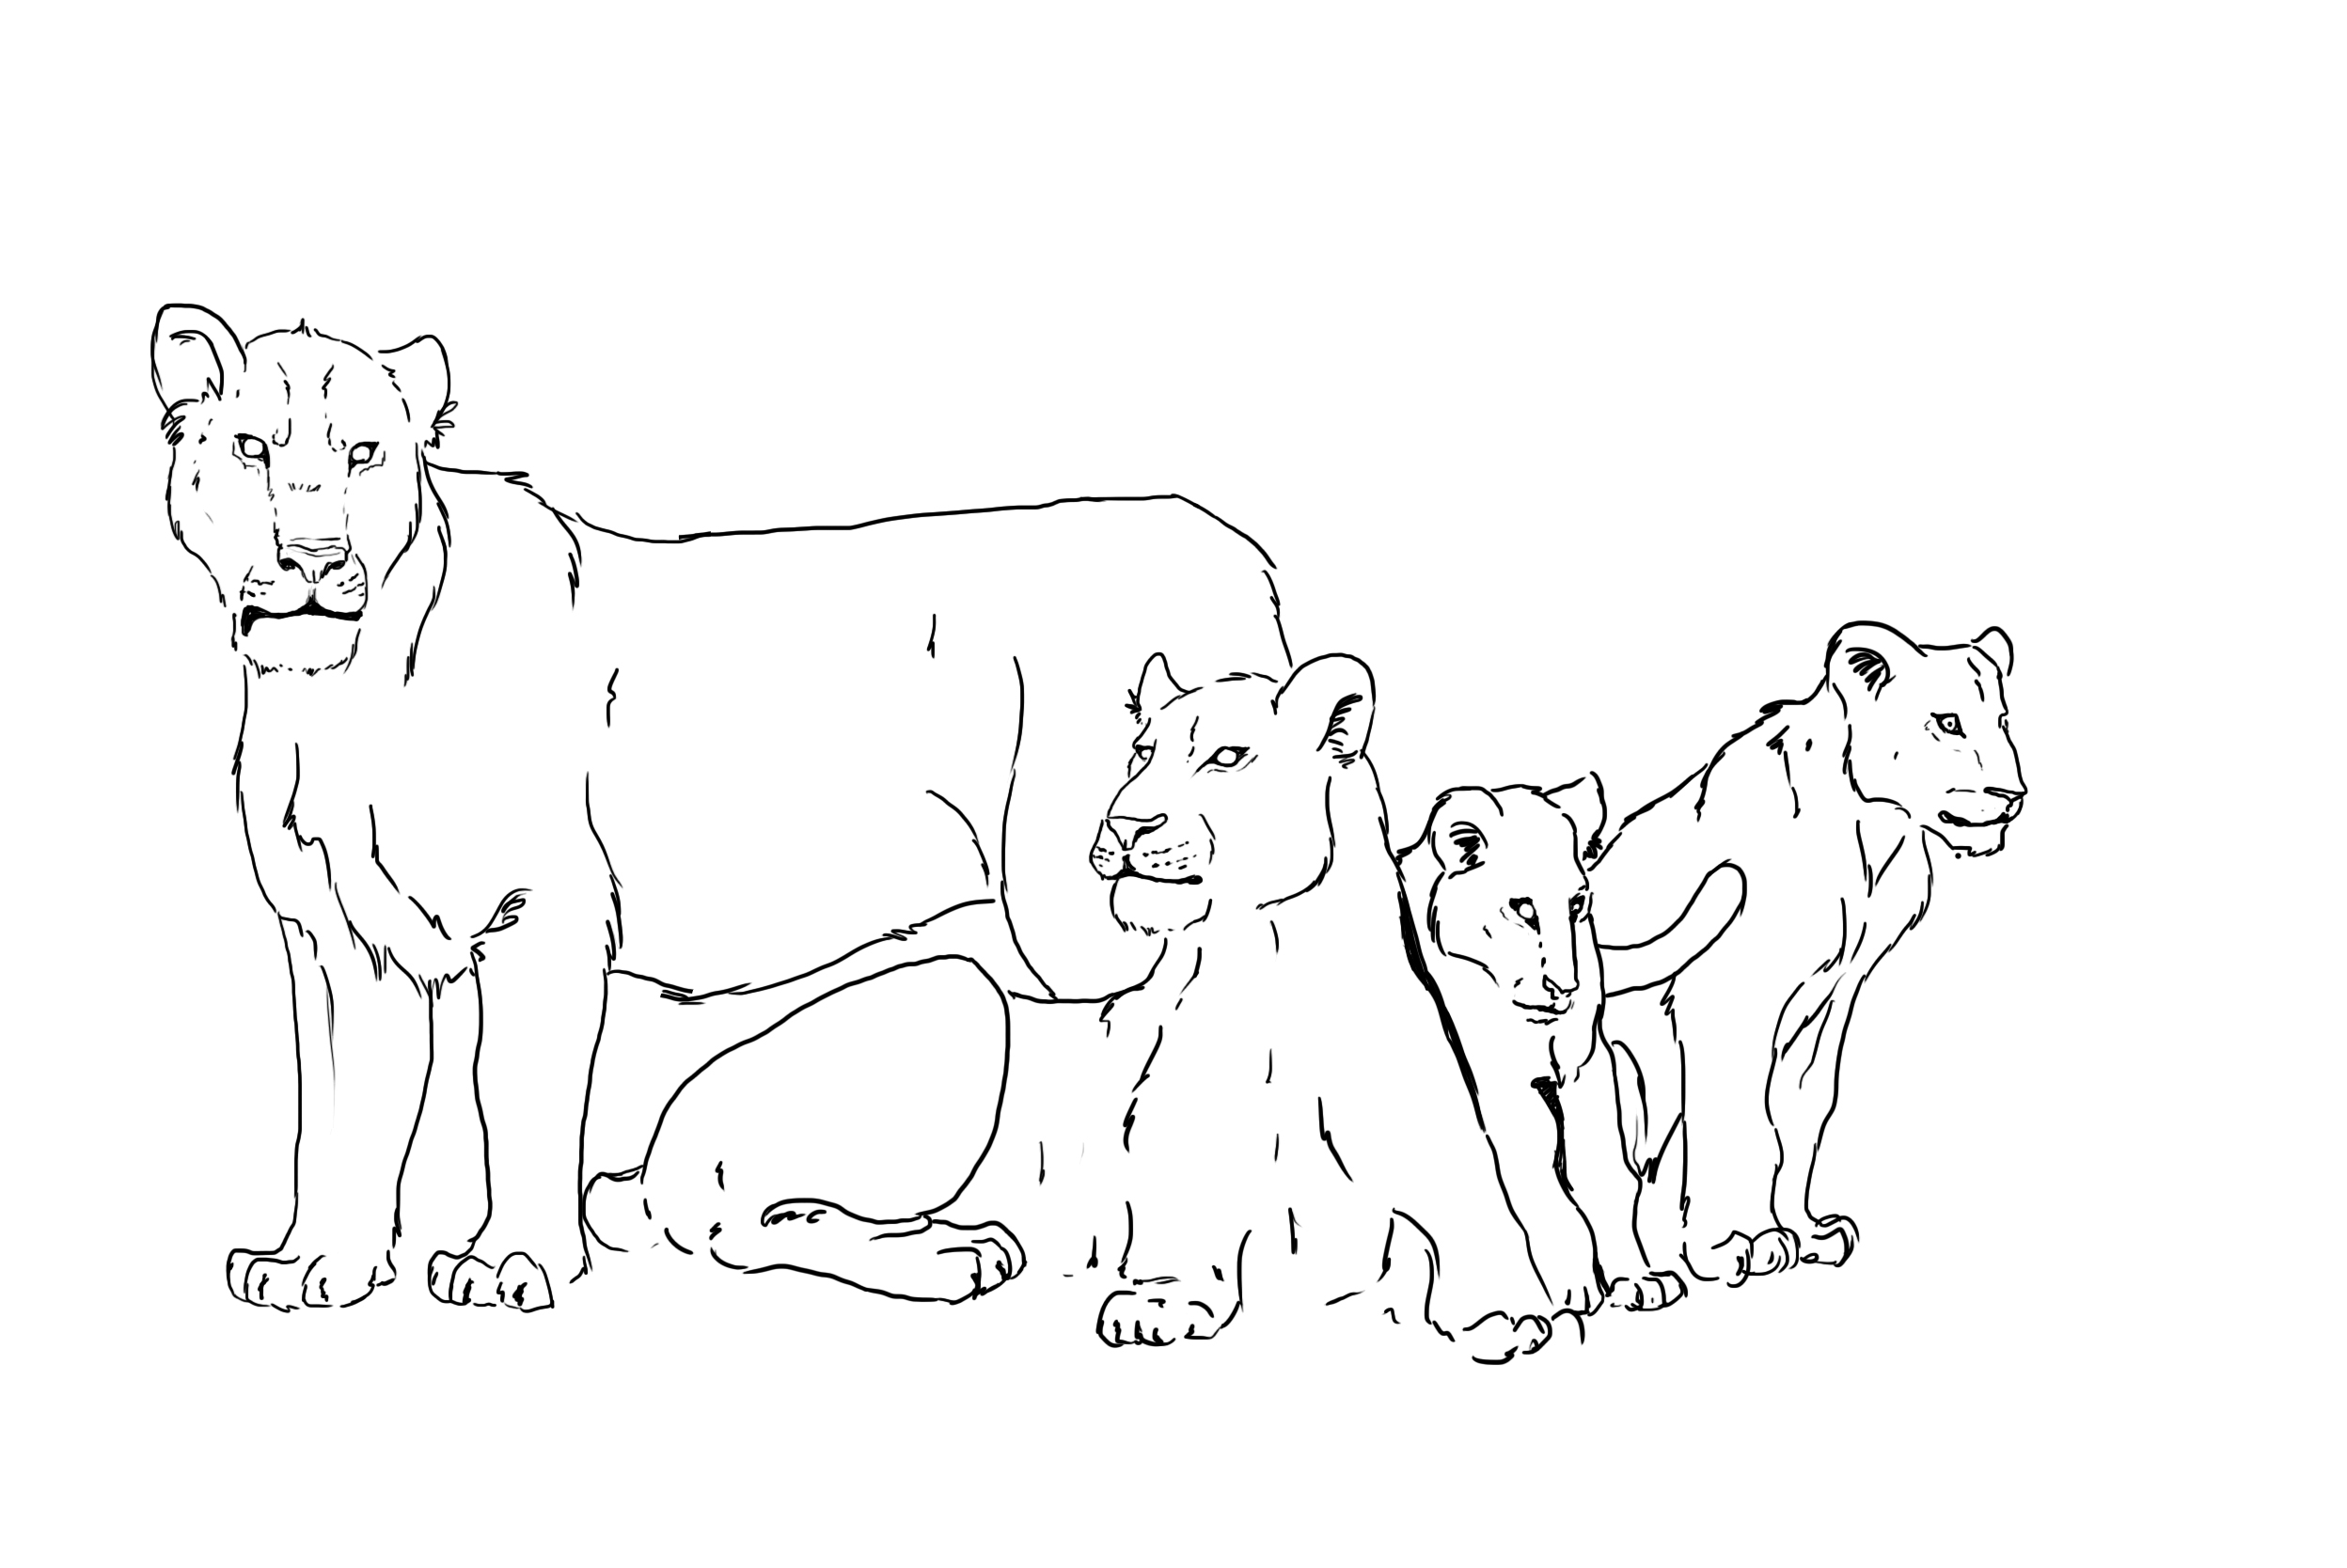 The Lion Guard Coloring Pages additionally Cheetah Coloring Pages furthermore Kovu And Kiara Base 347984520 moreover Image20822 likewise Rafiki And Simba. on lion pride coloring pages